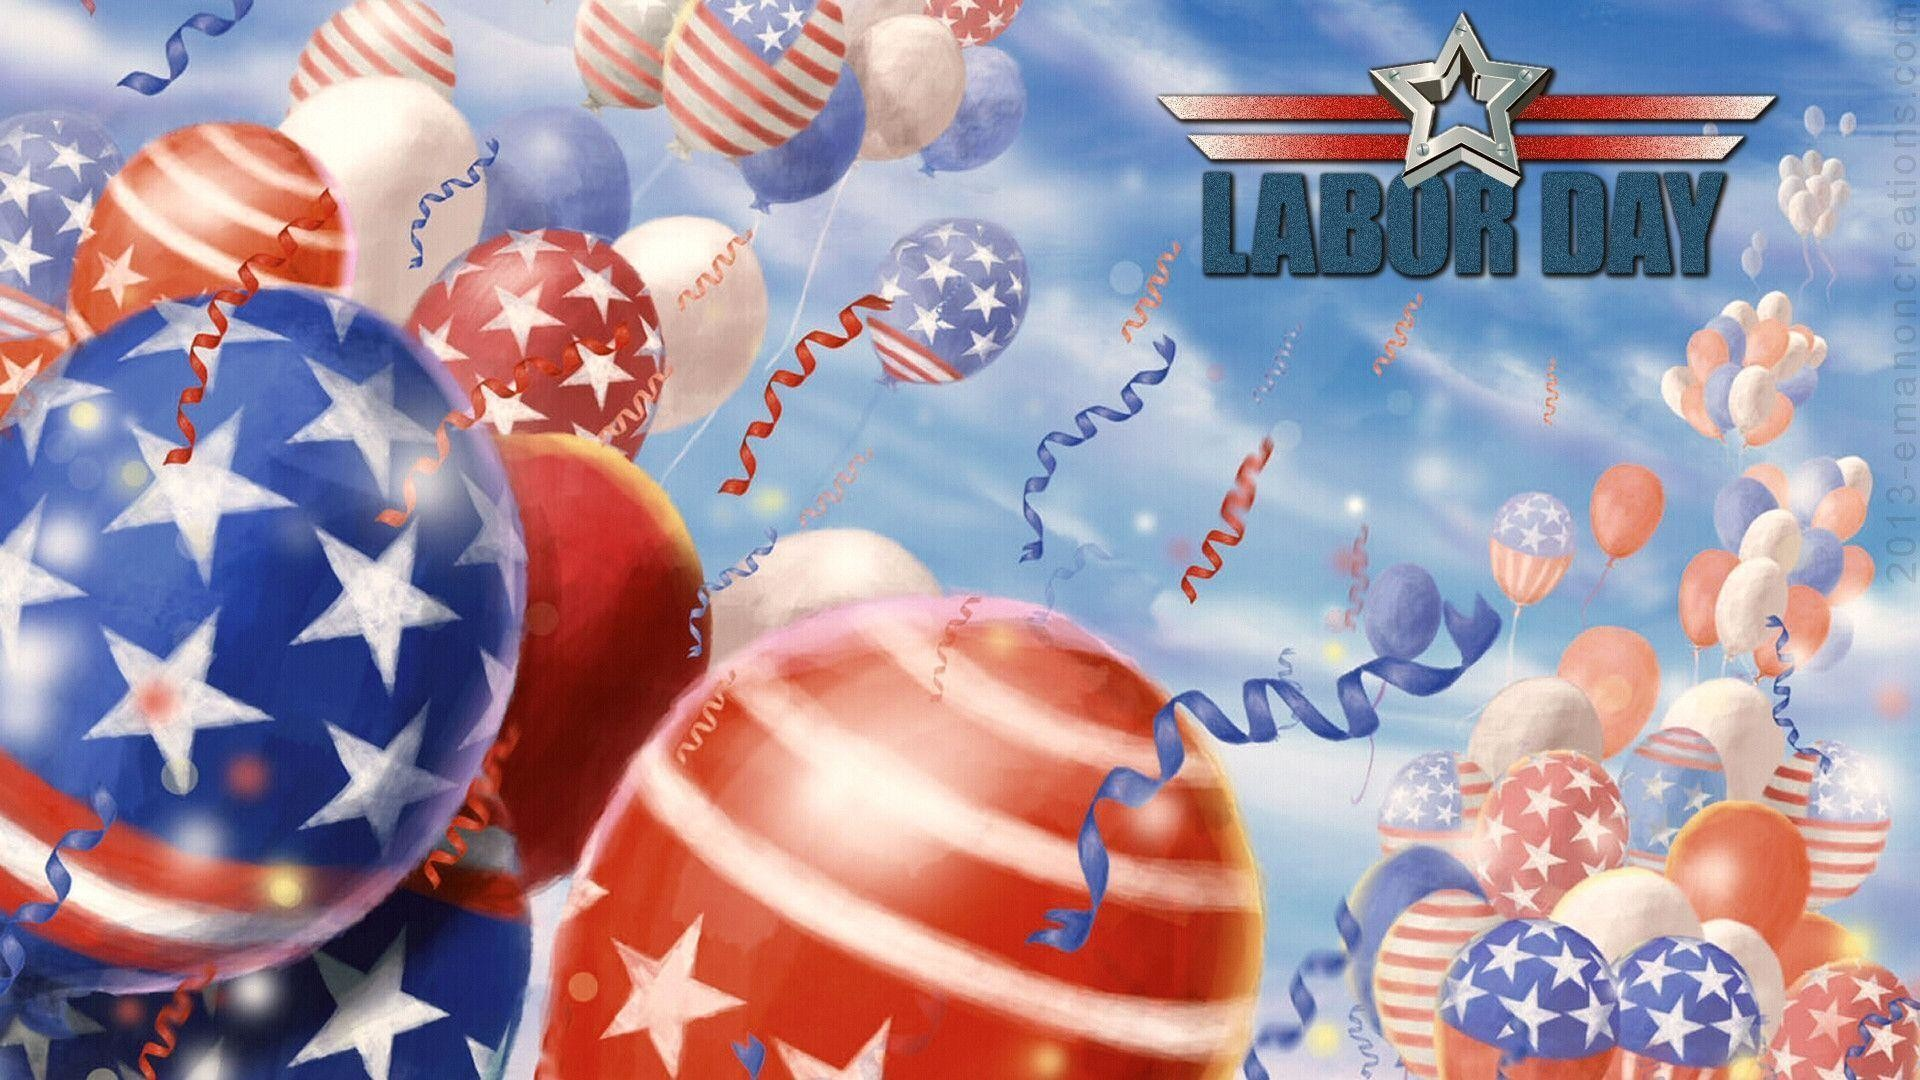 Res: 1920x1080, Labor Day wallpapers in hd - HD Wallpaper